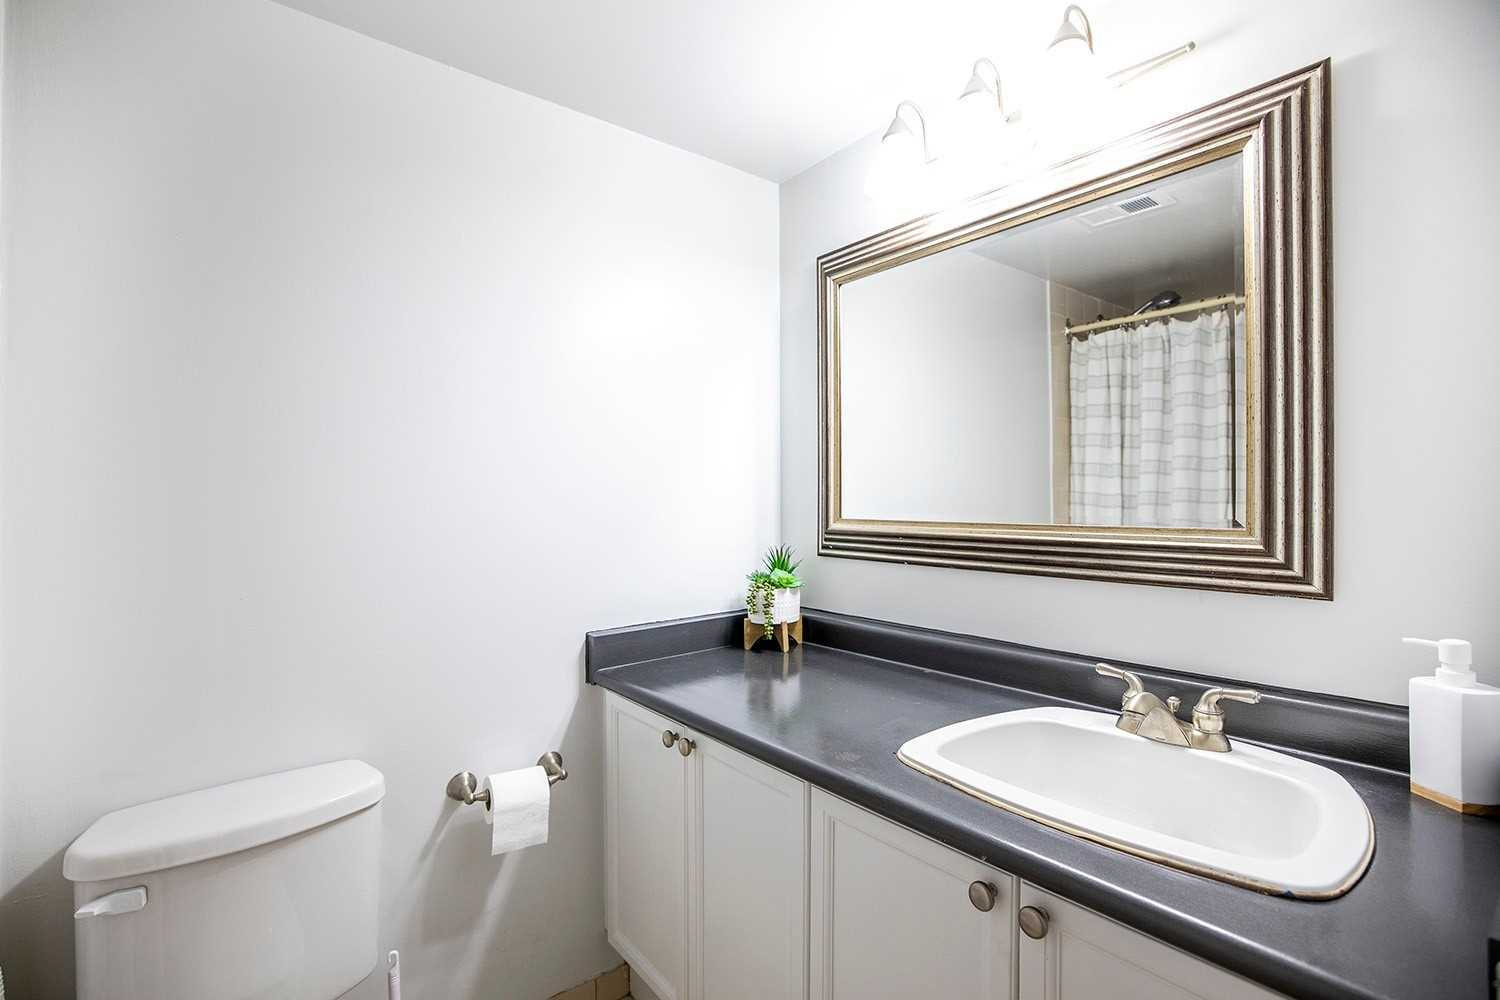 Image 7 of 20 showing inside of 2 Bedroom Condo Apt 2-Storey for Sale at 25 Cumberland Lane Unit# 112, Ajax L1S7K1